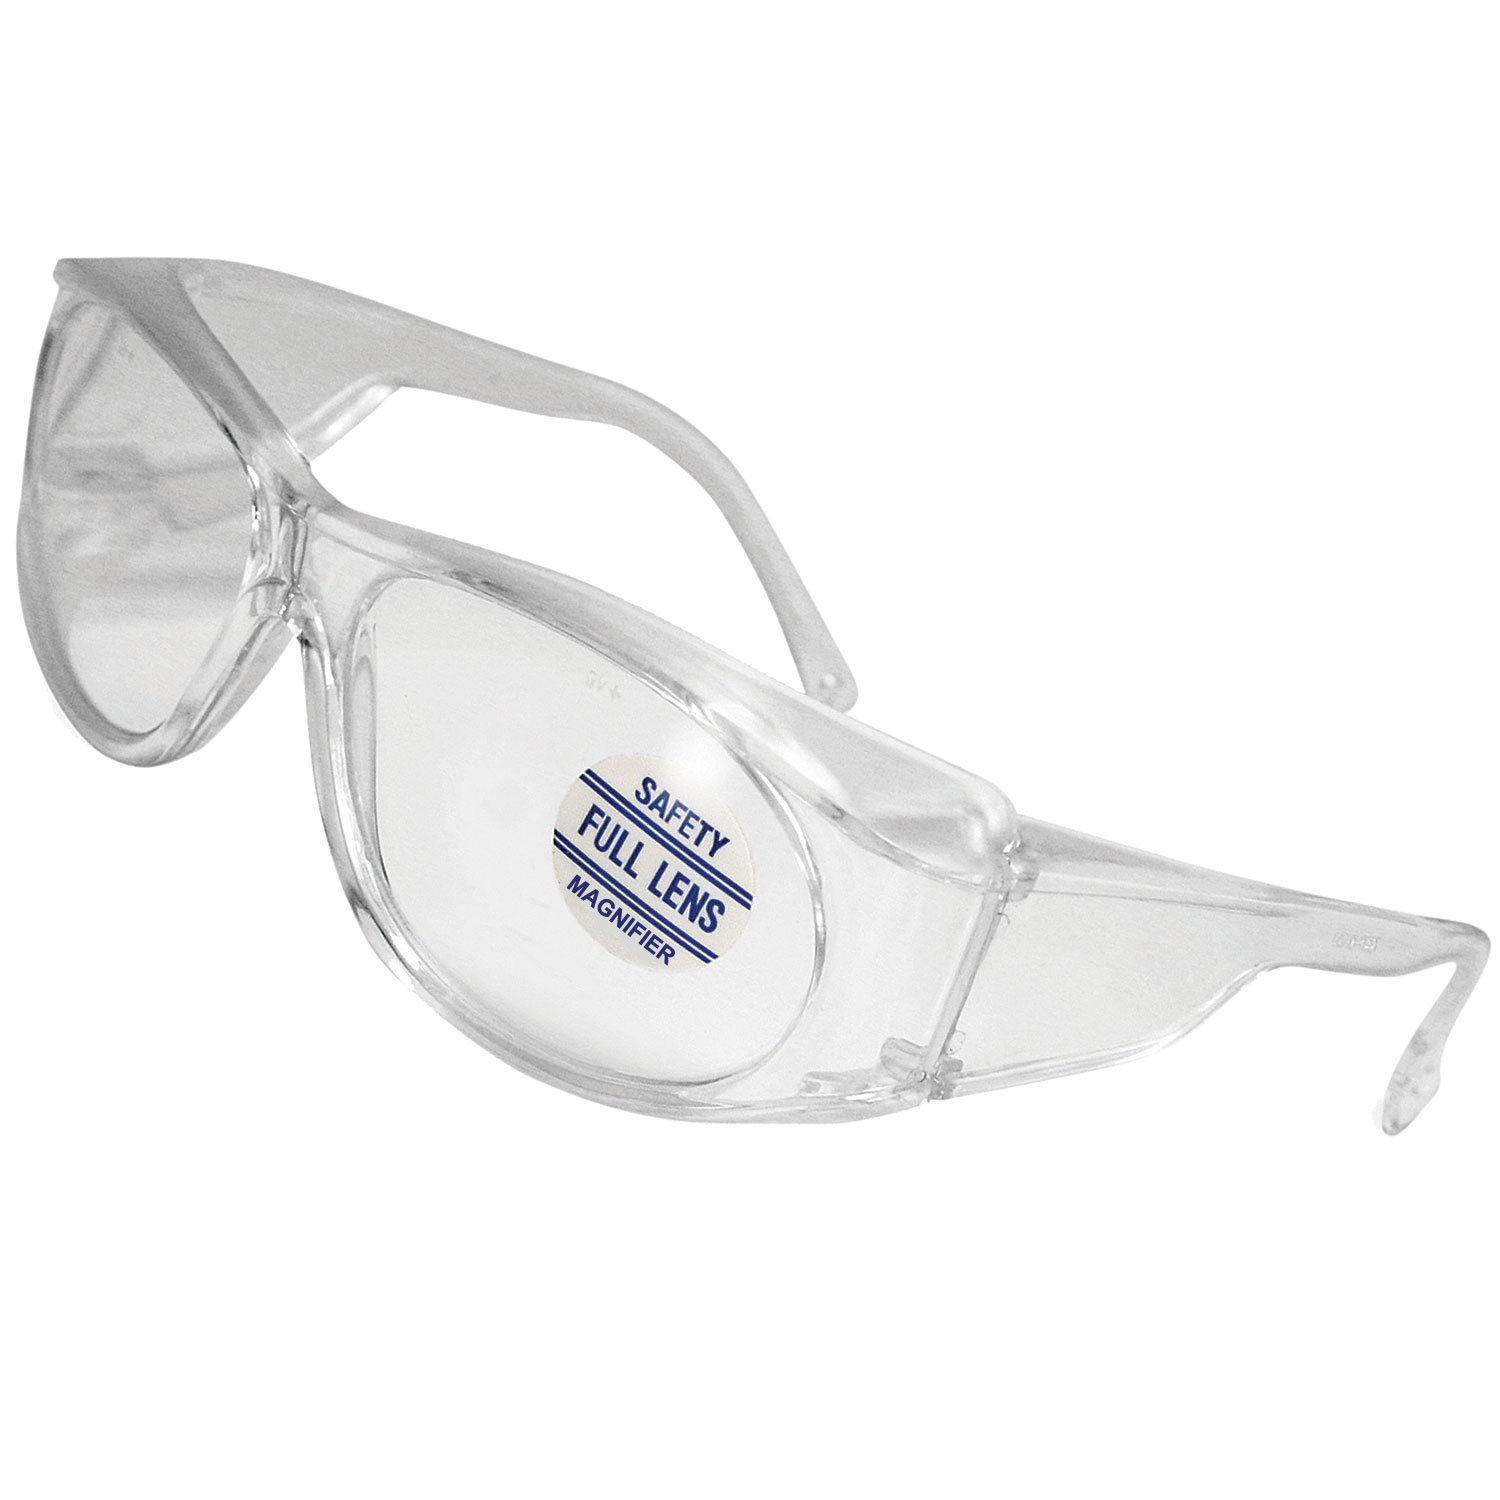 Mag-Safe Full Magnifying Reader Safety Glasses Reading Magnifier Eyewear Available from 1.25-3.00 Select Full Magnifier: +3.00 New Style